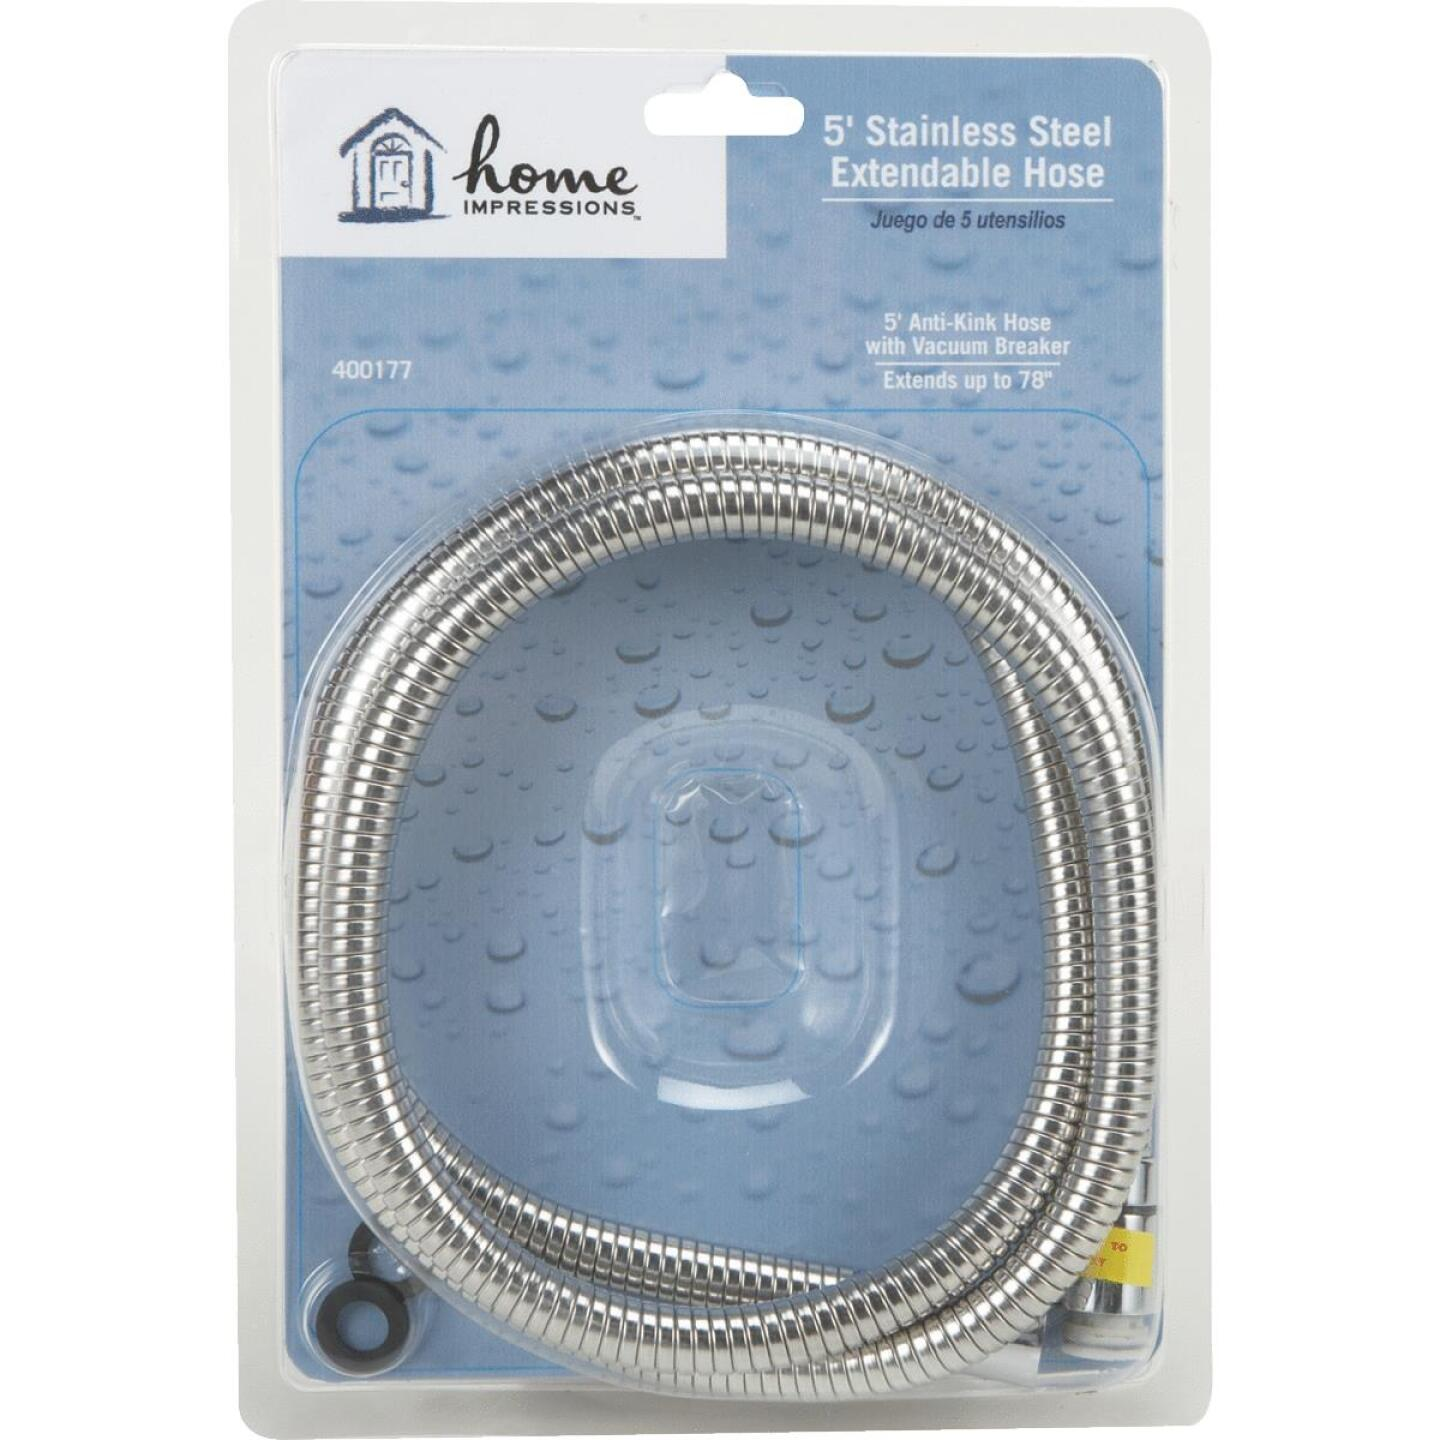 Home Impressions Stainless Steel 60 In. To 82 In. Extendable Shower Hose Image 2